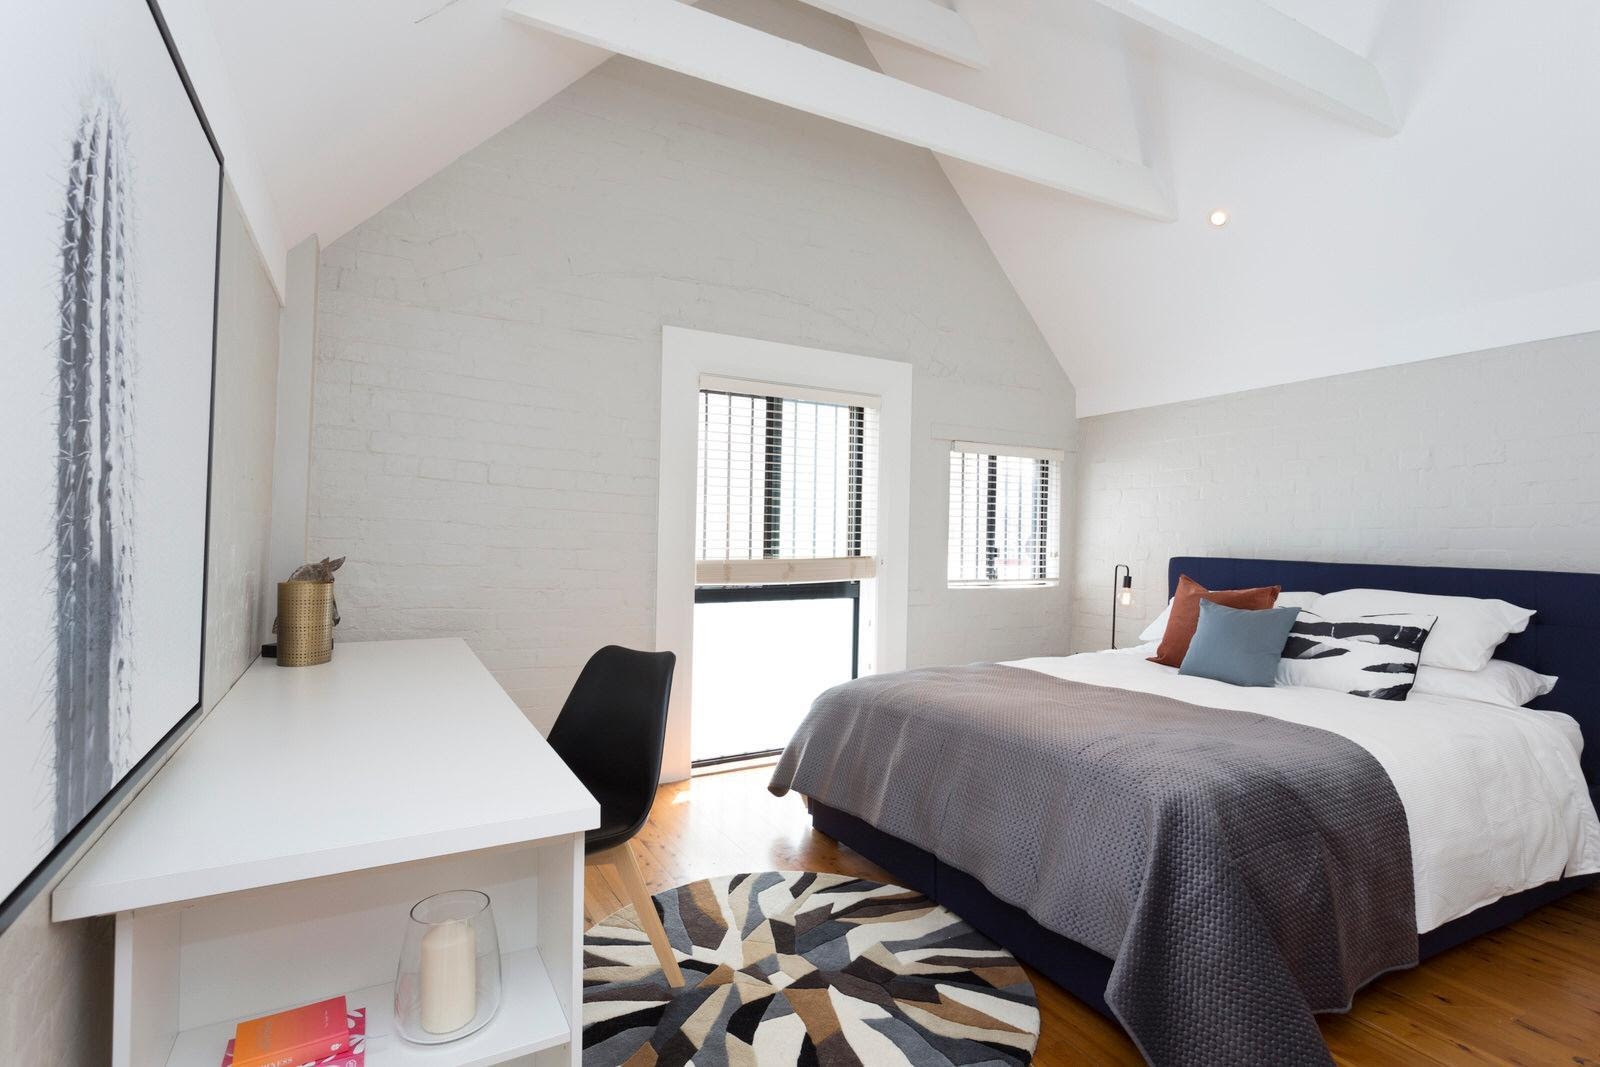 hotel near Sydney Stay in a Converted 19th-Century Horse Stable